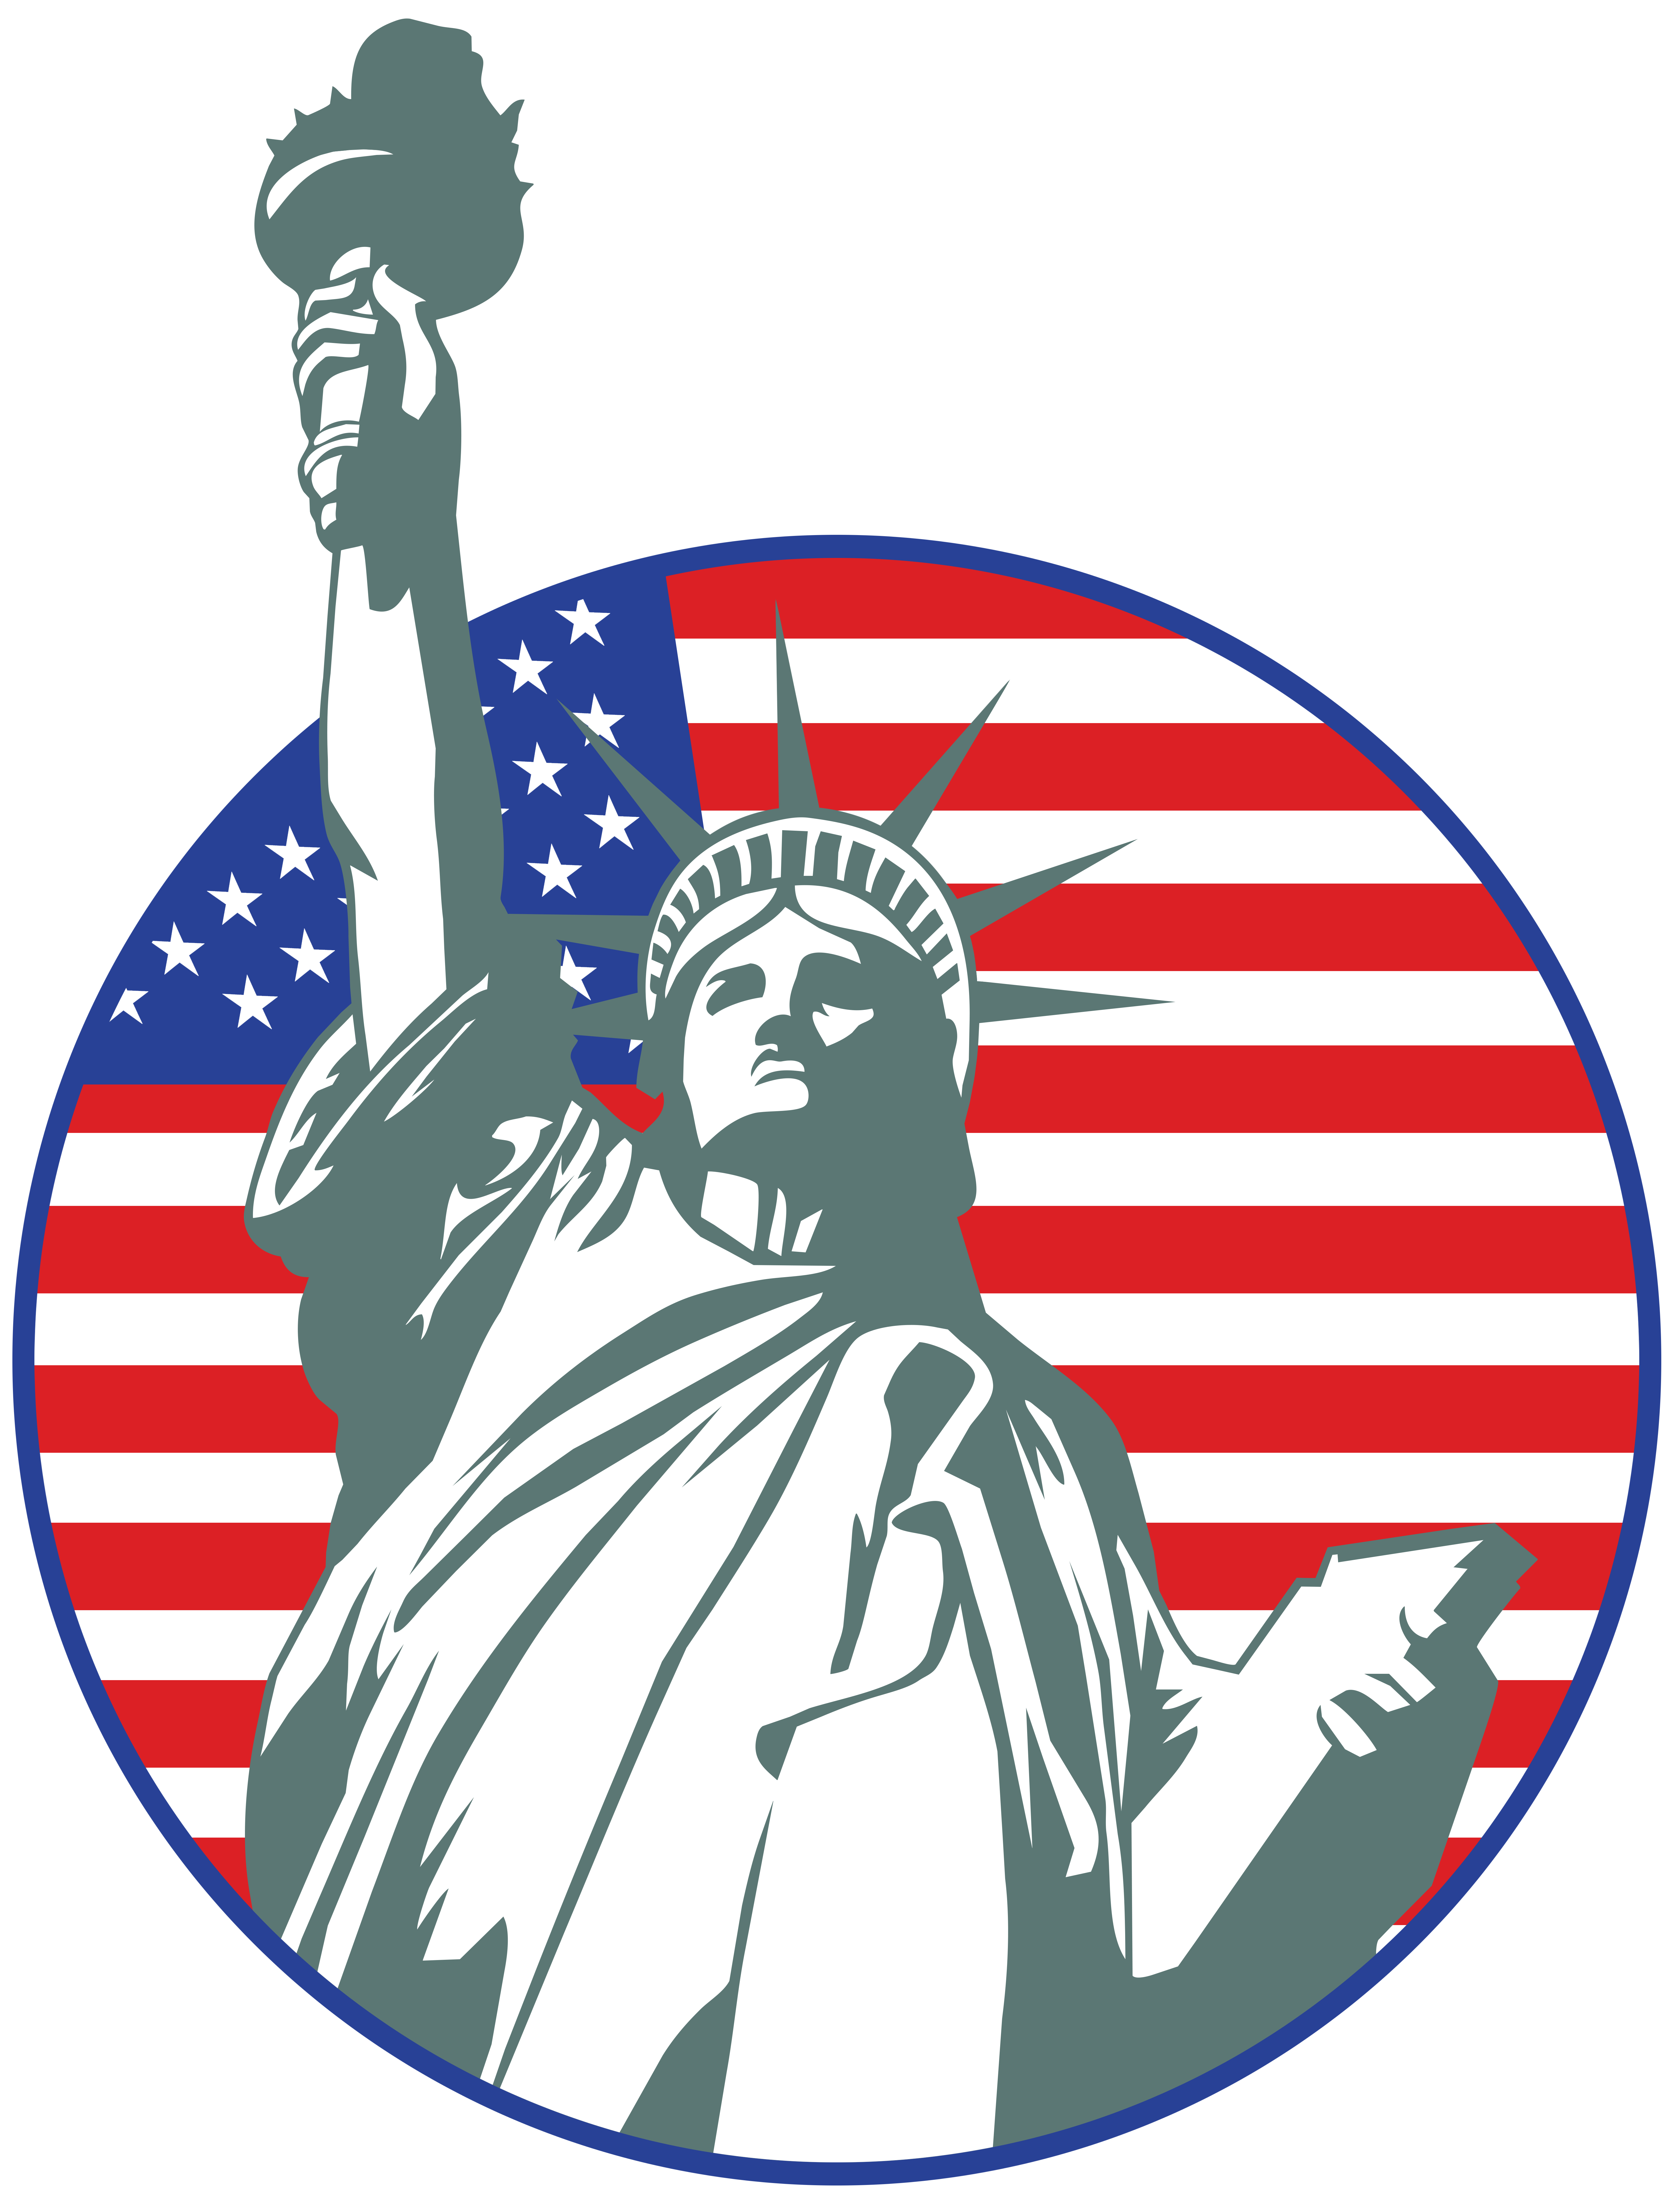 Liberty at getdrawings com. Stamp clipart high quality